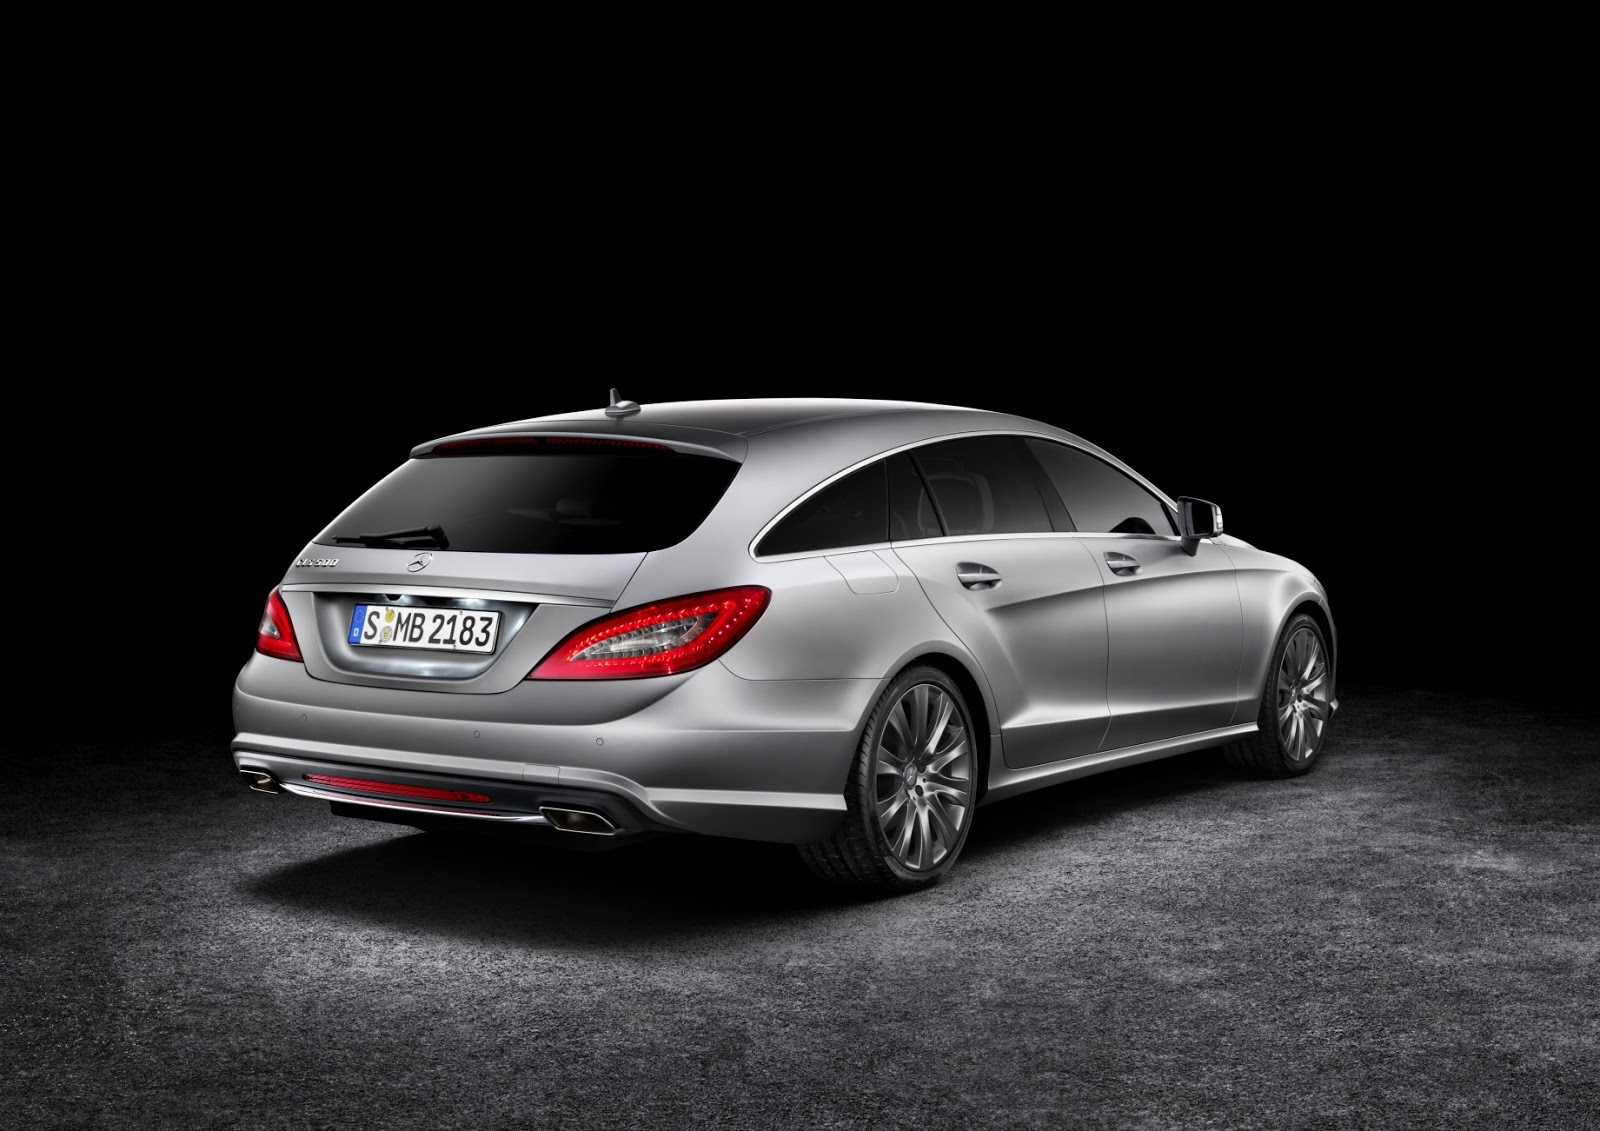 all cars nz 2013 mercedes benz cls shooting brake 350 cdi. Black Bedroom Furniture Sets. Home Design Ideas